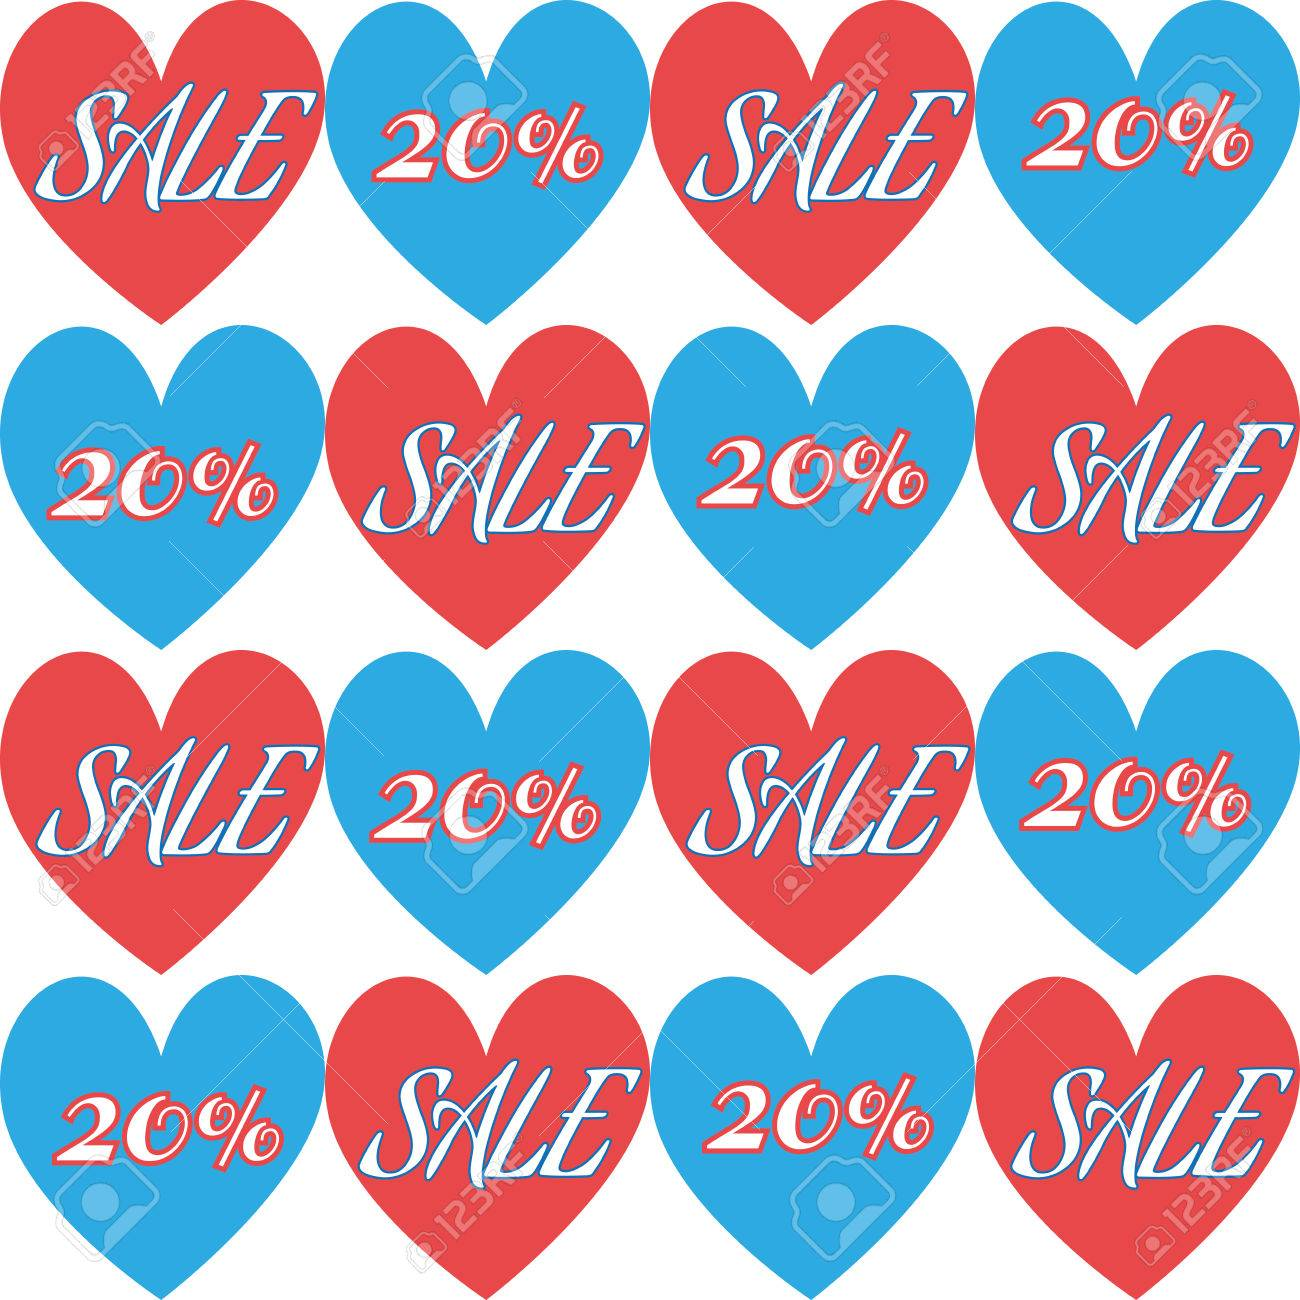 Happy Valentines Day Sale Banner Blue And Red Hearts Tiles - Blue and white tiles for sale